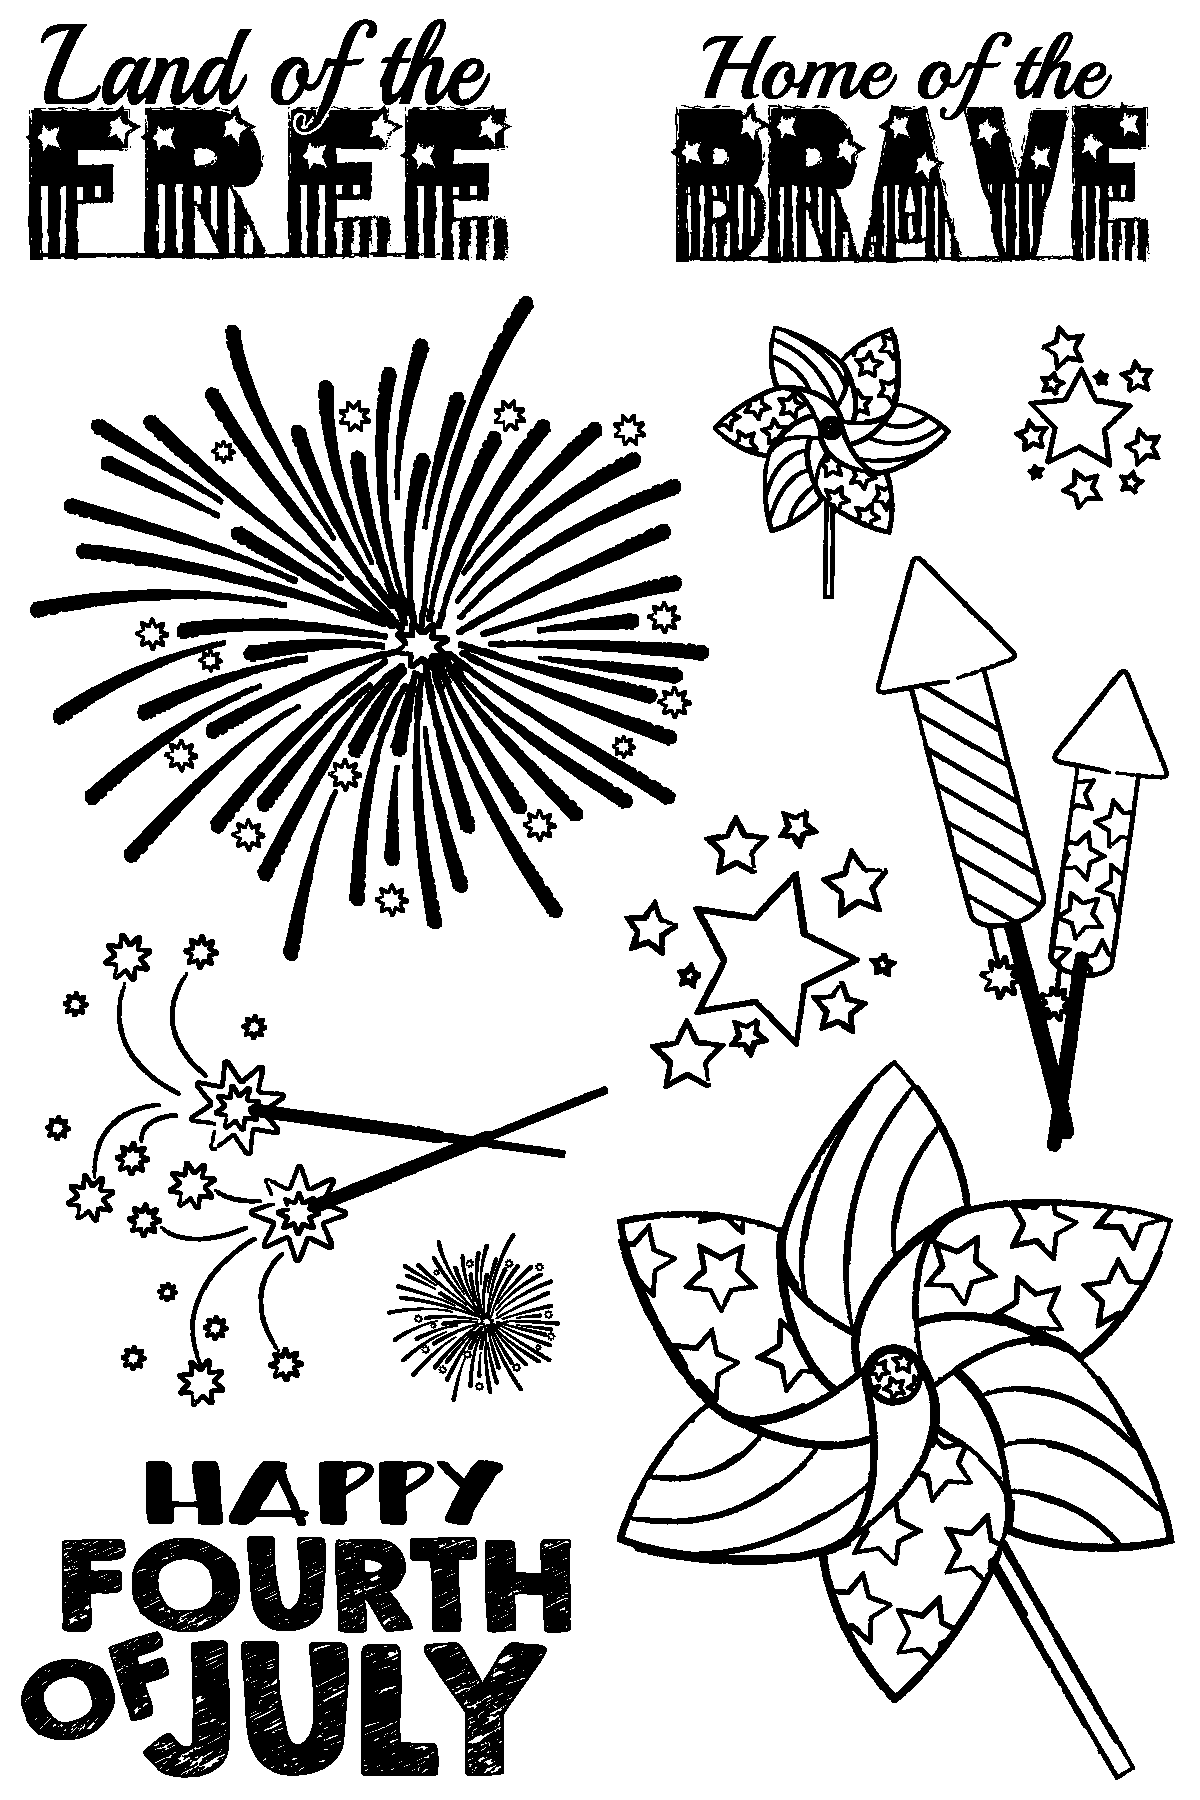 Happy Fourth of July Stamp Set by Joy Clair